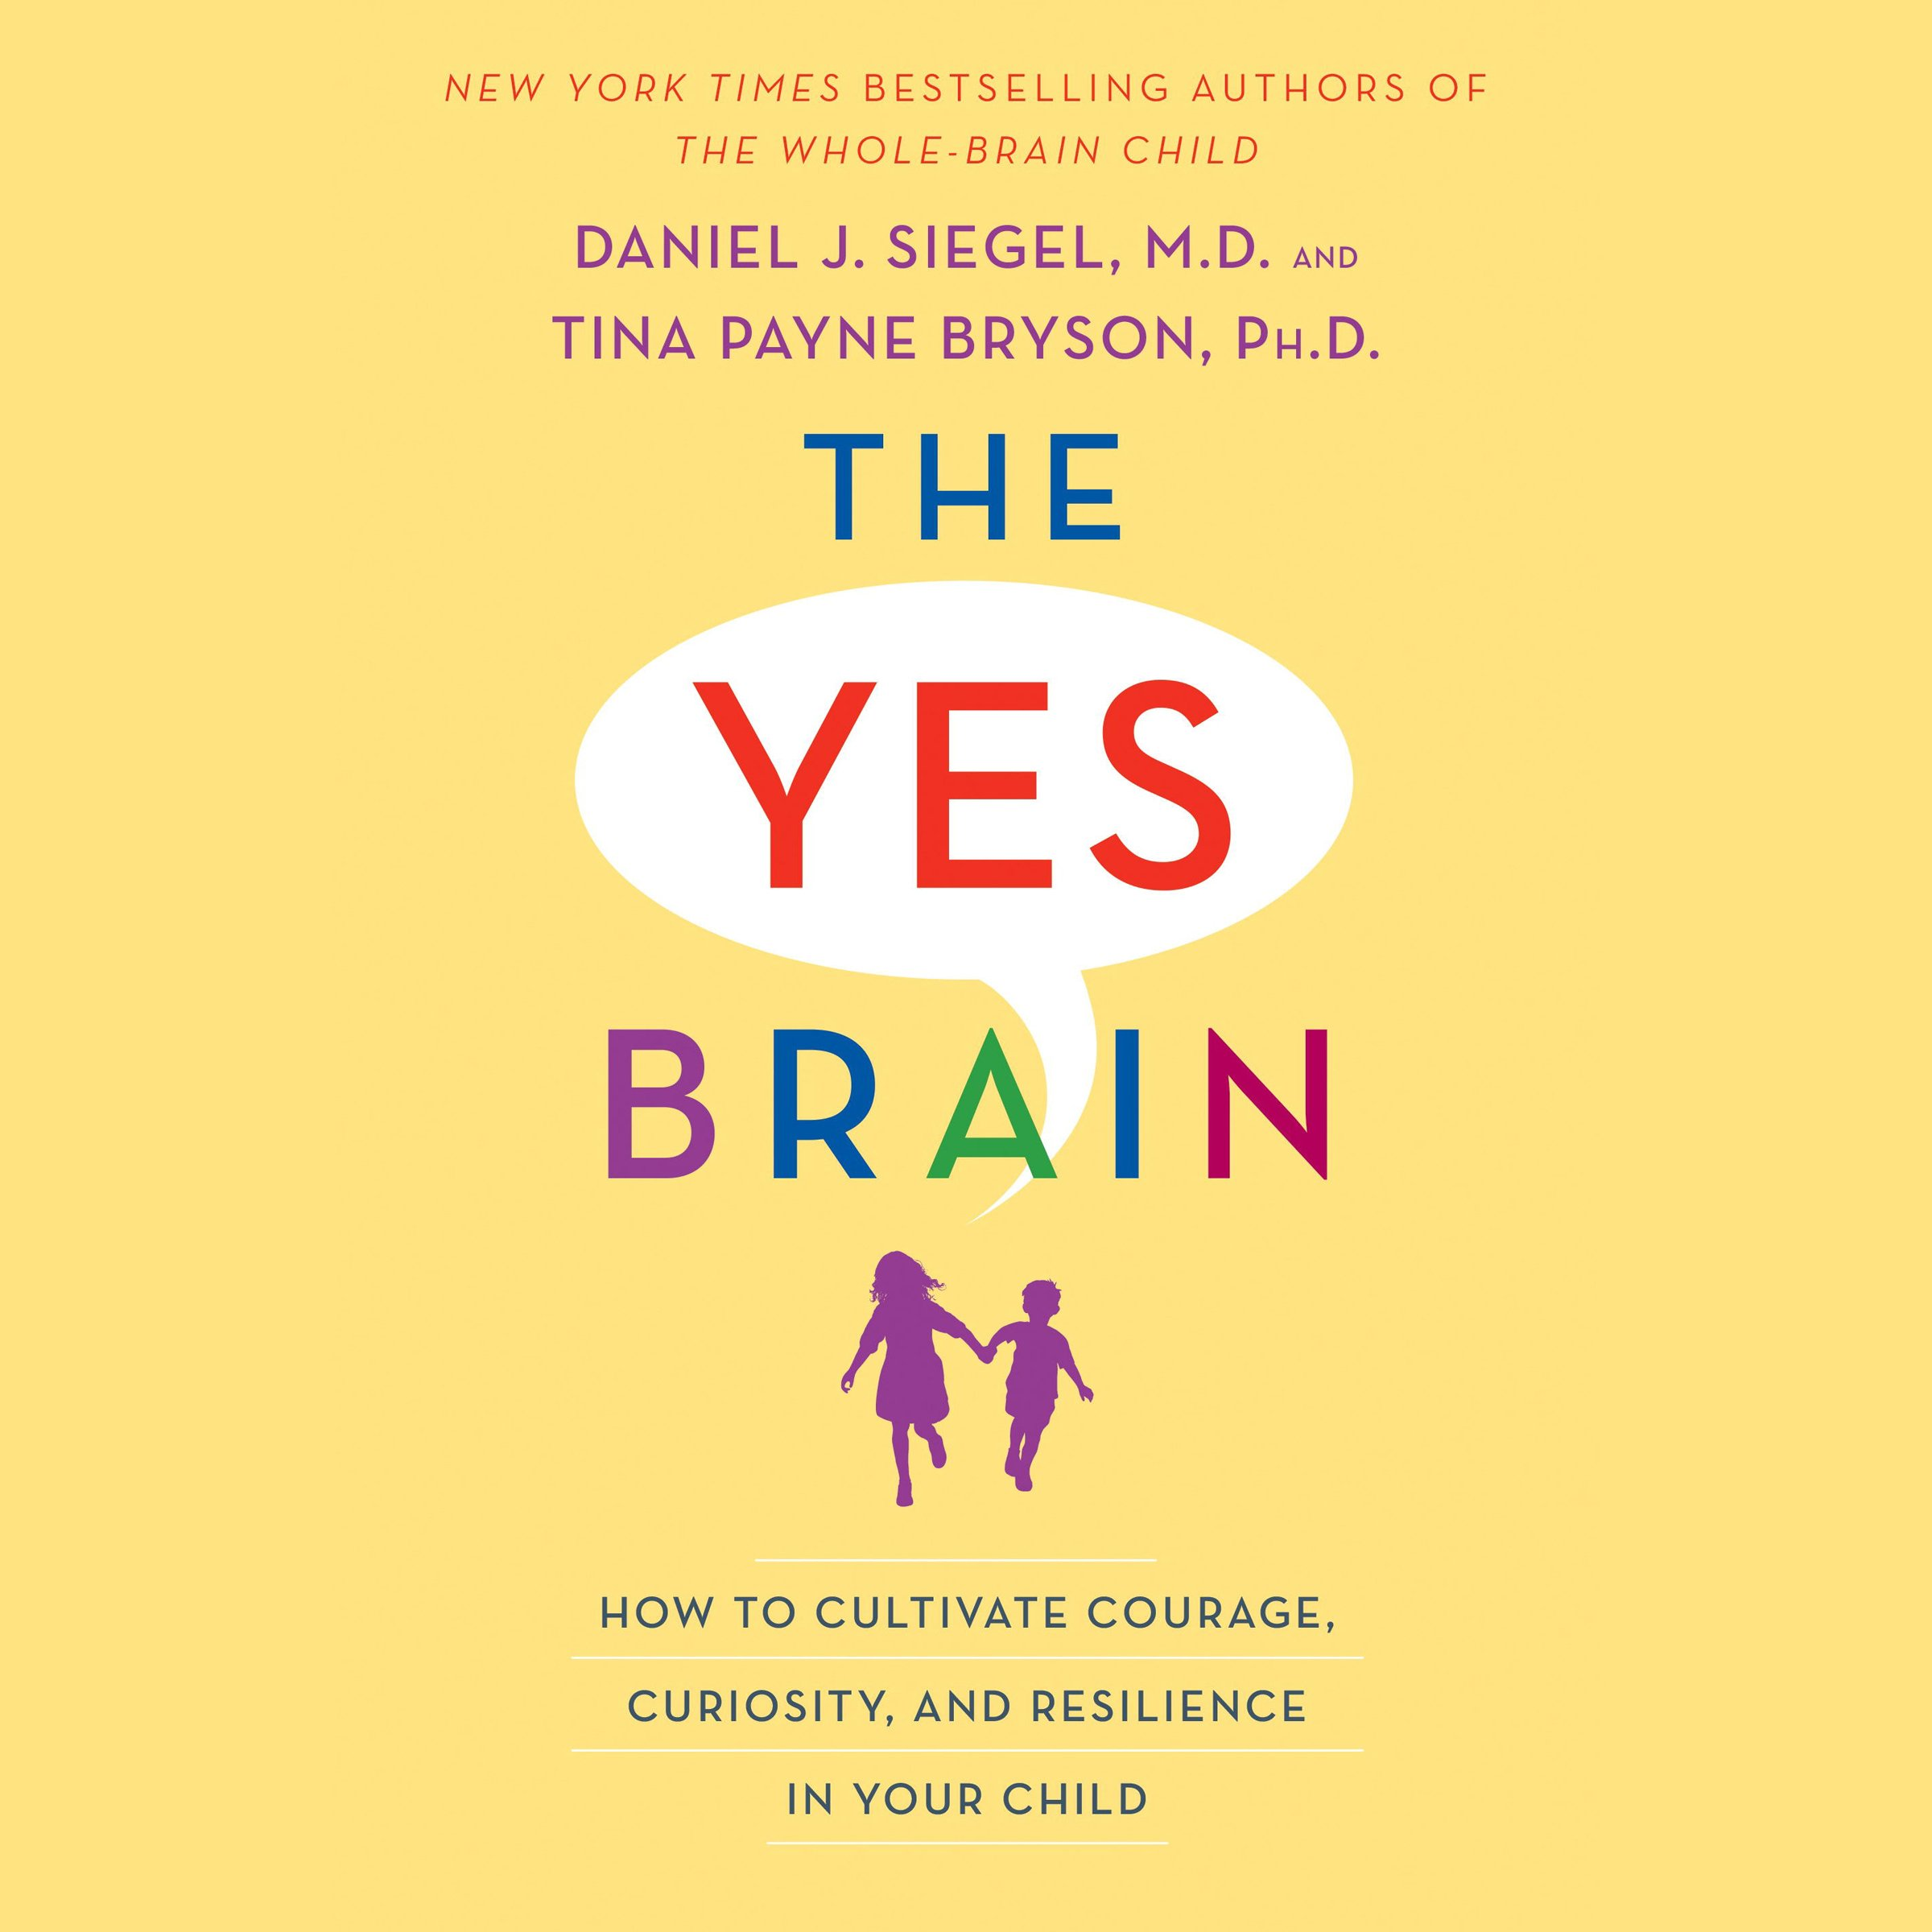 The Yes Brain  How To Cultivate Courage Curiosity And Resilience In Your Child